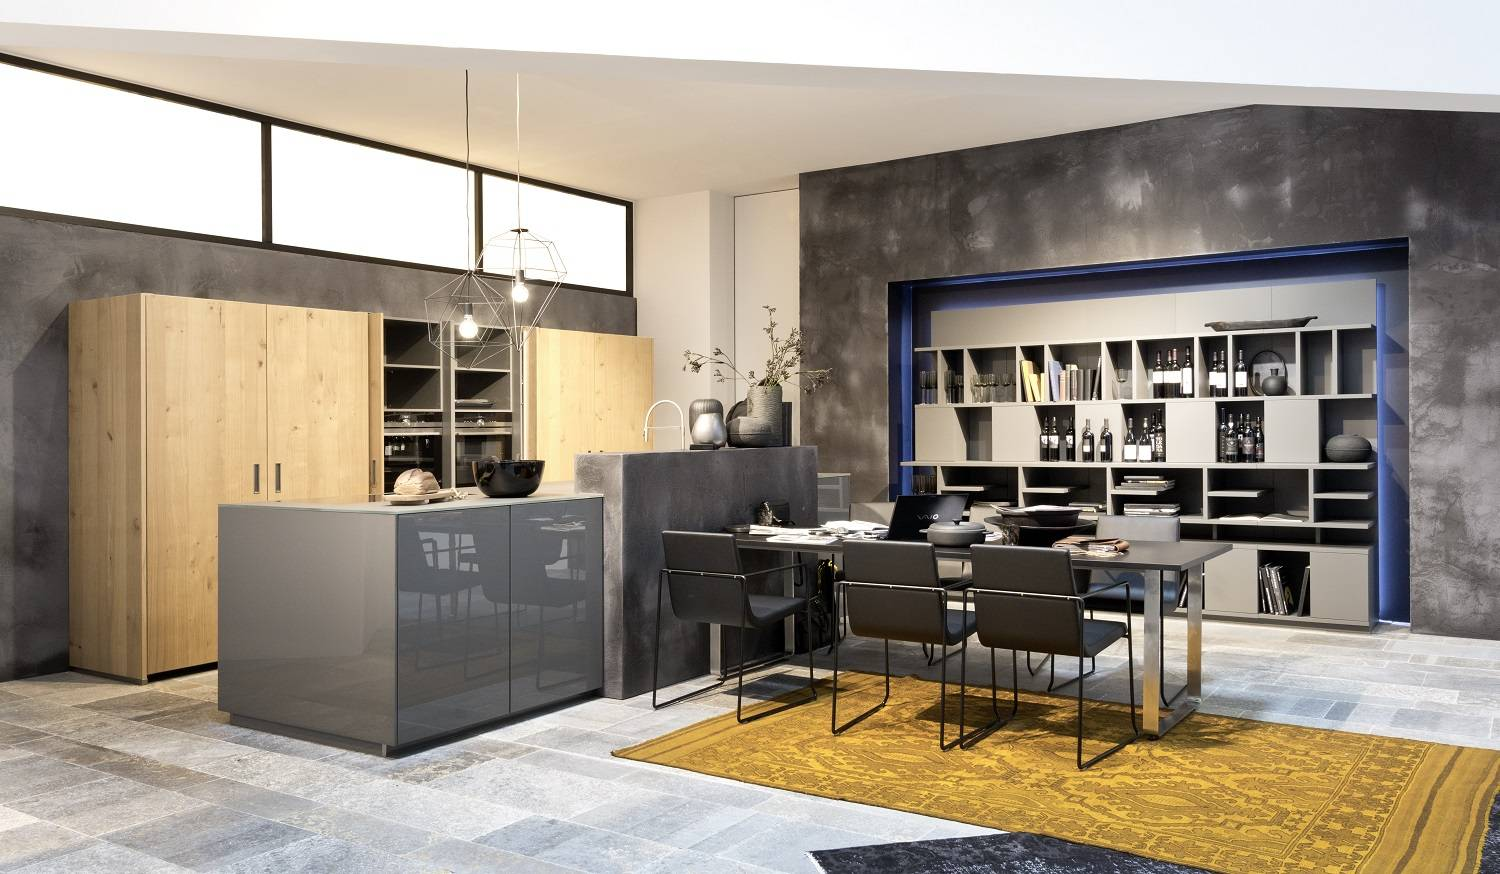 conception de cuisine design sur mesure lyon adc cuisine. Black Bedroom Furniture Sets. Home Design Ideas